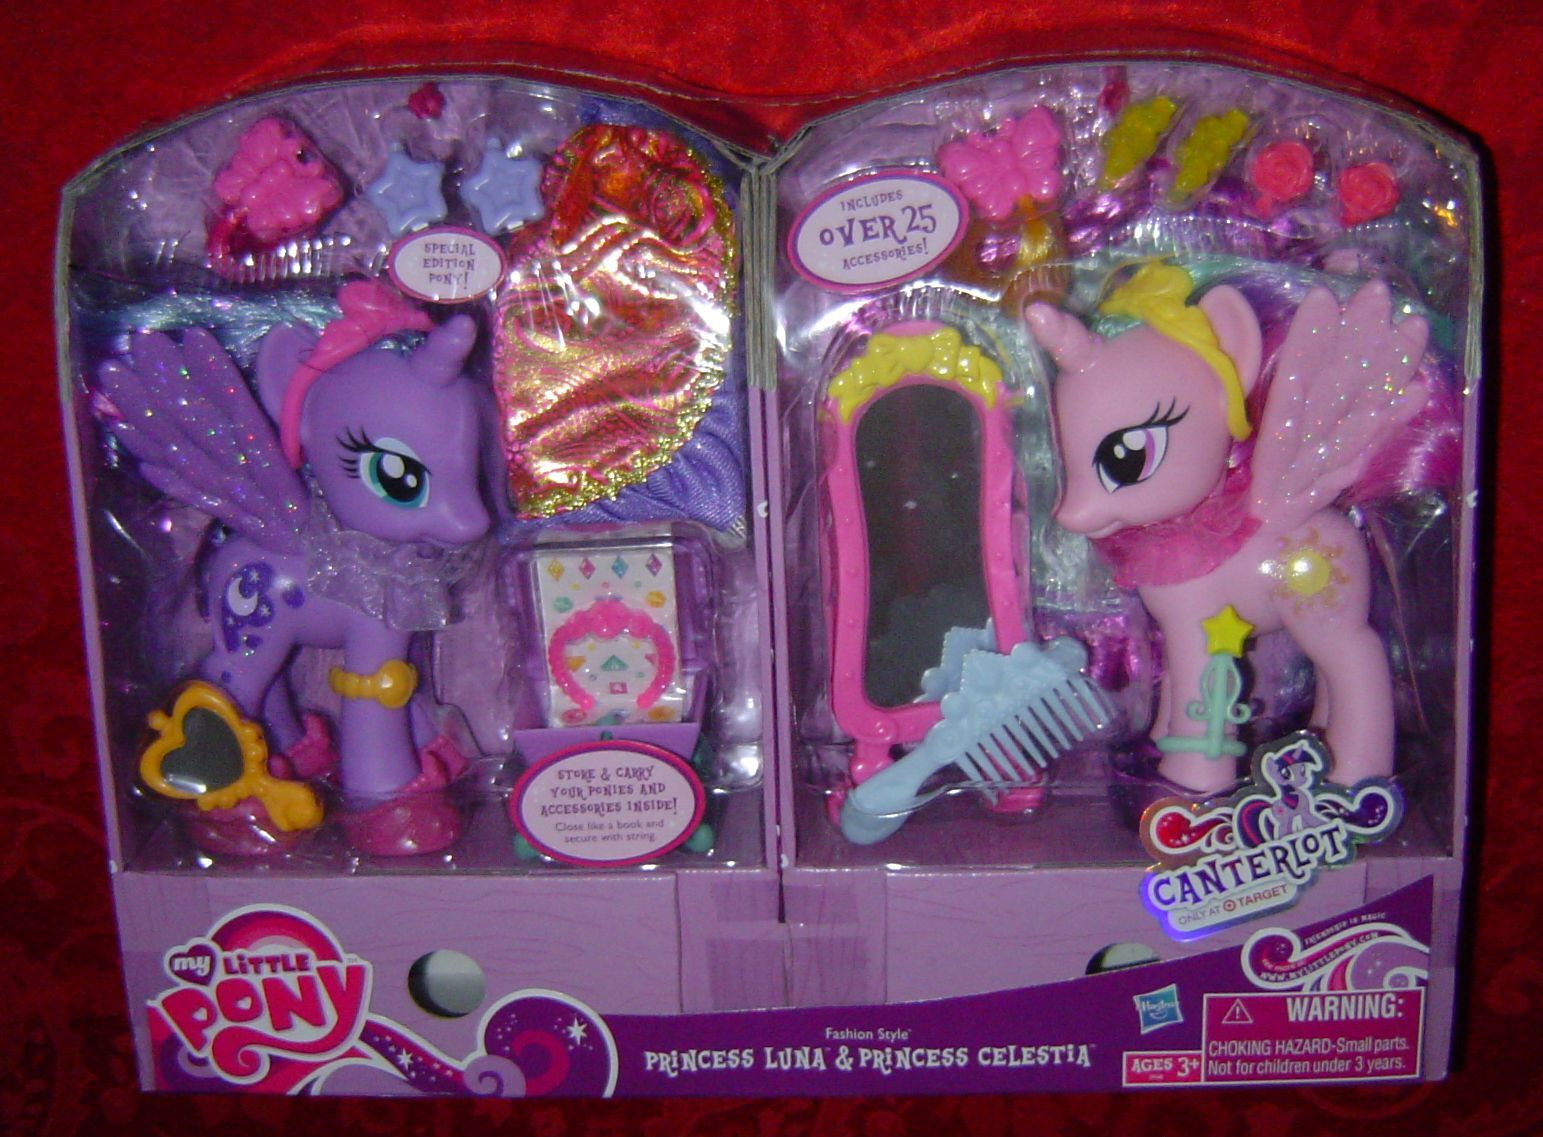 My Little Pony Fashion Style Princess Luna Princess Celestia 2 Pack 1990 Now